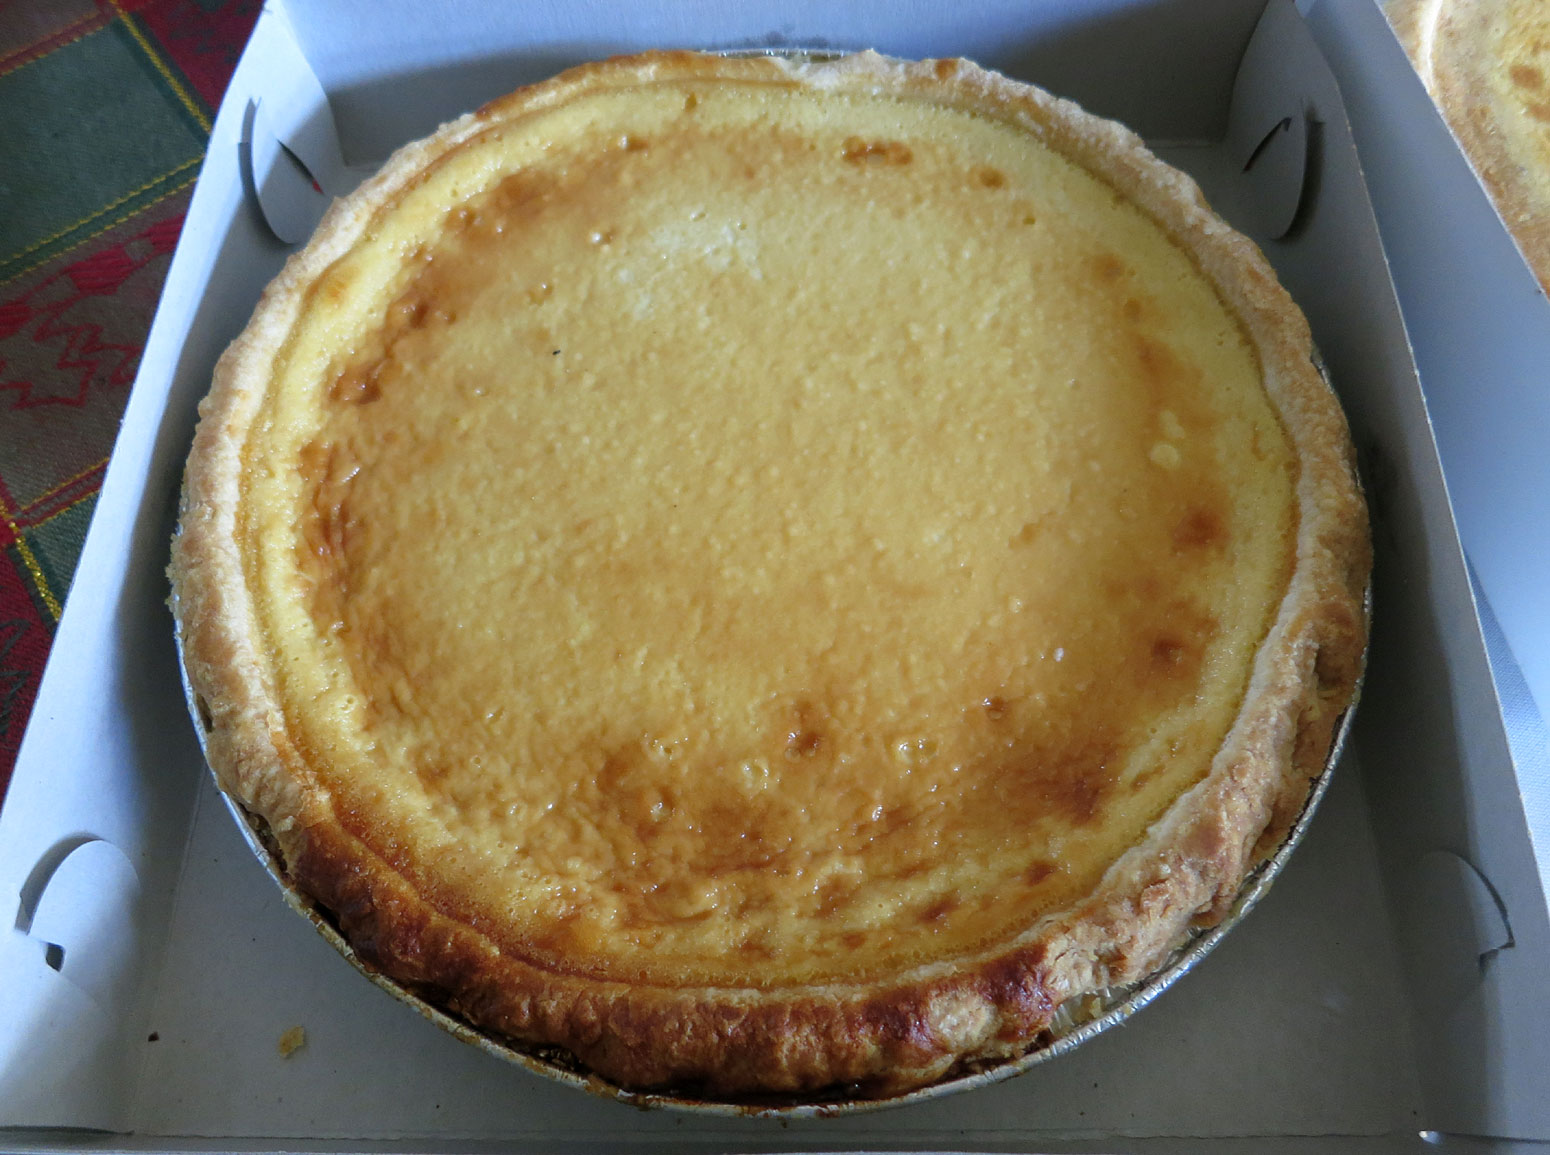 Lee's Bakery (King Street, Chinatown Honolulu) famous Custard Pie